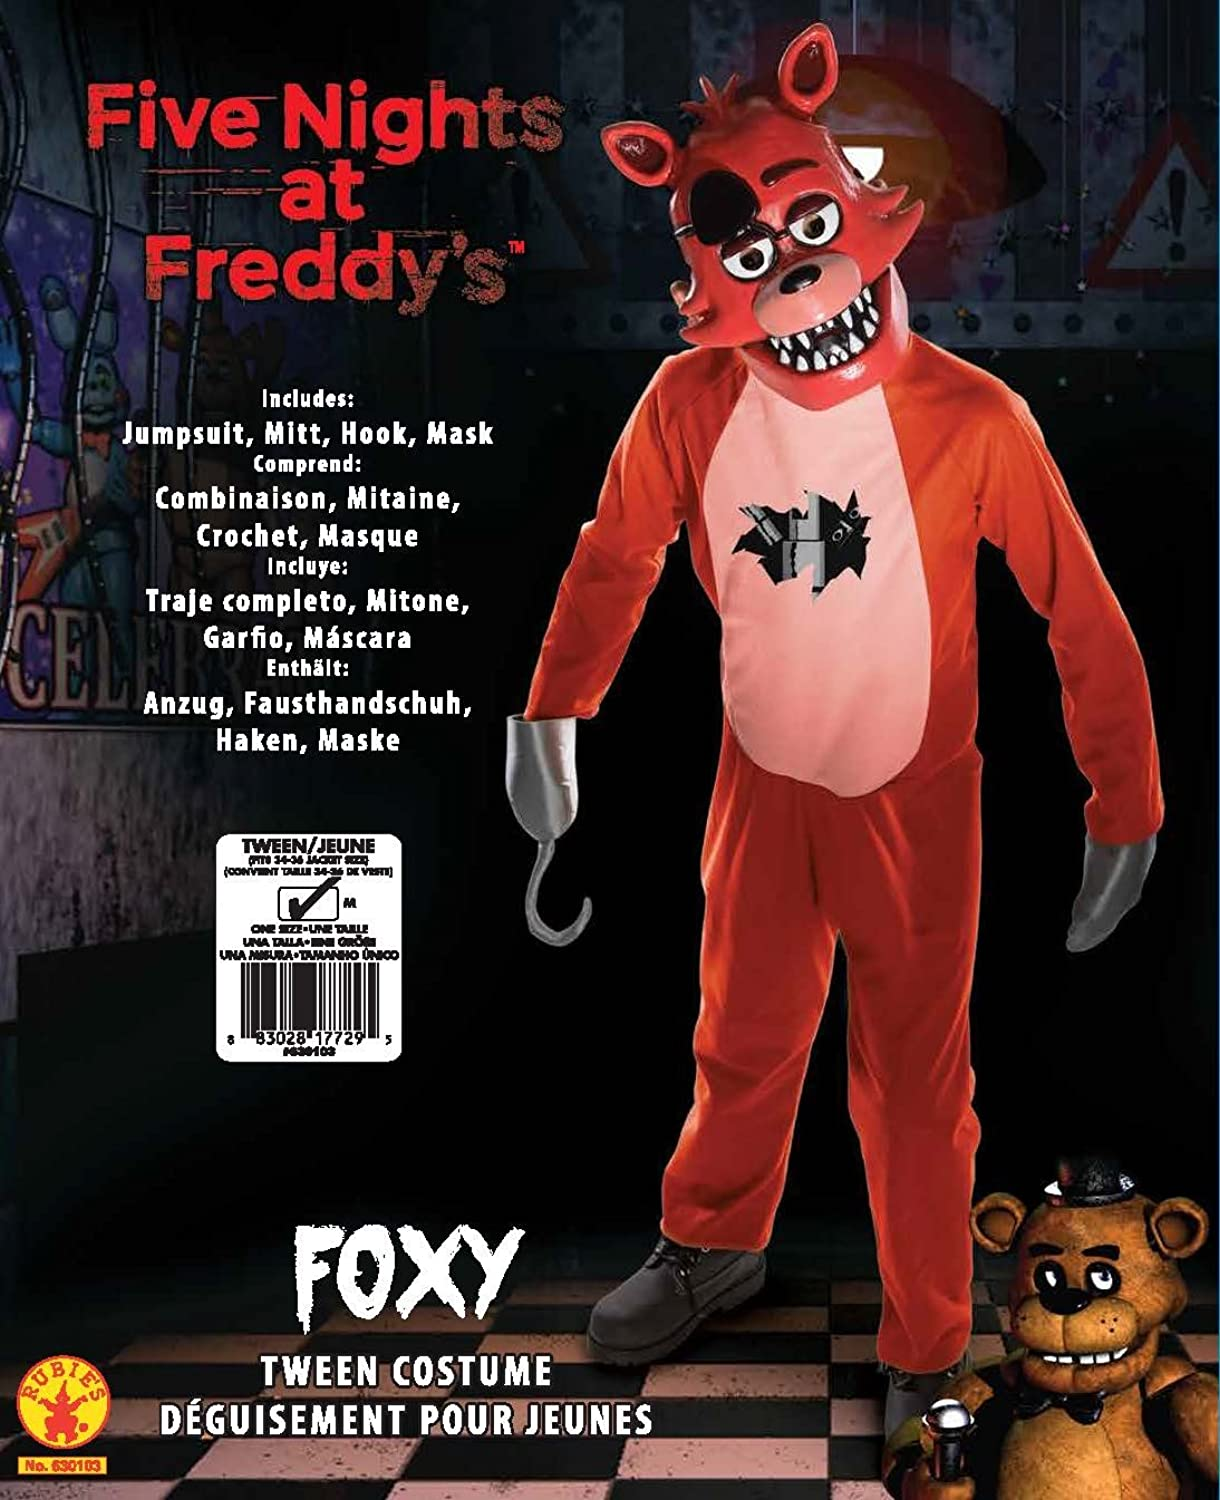 Amazon.com: Rubie's Costume Five Nights at Freddy's Tween Foxy ...